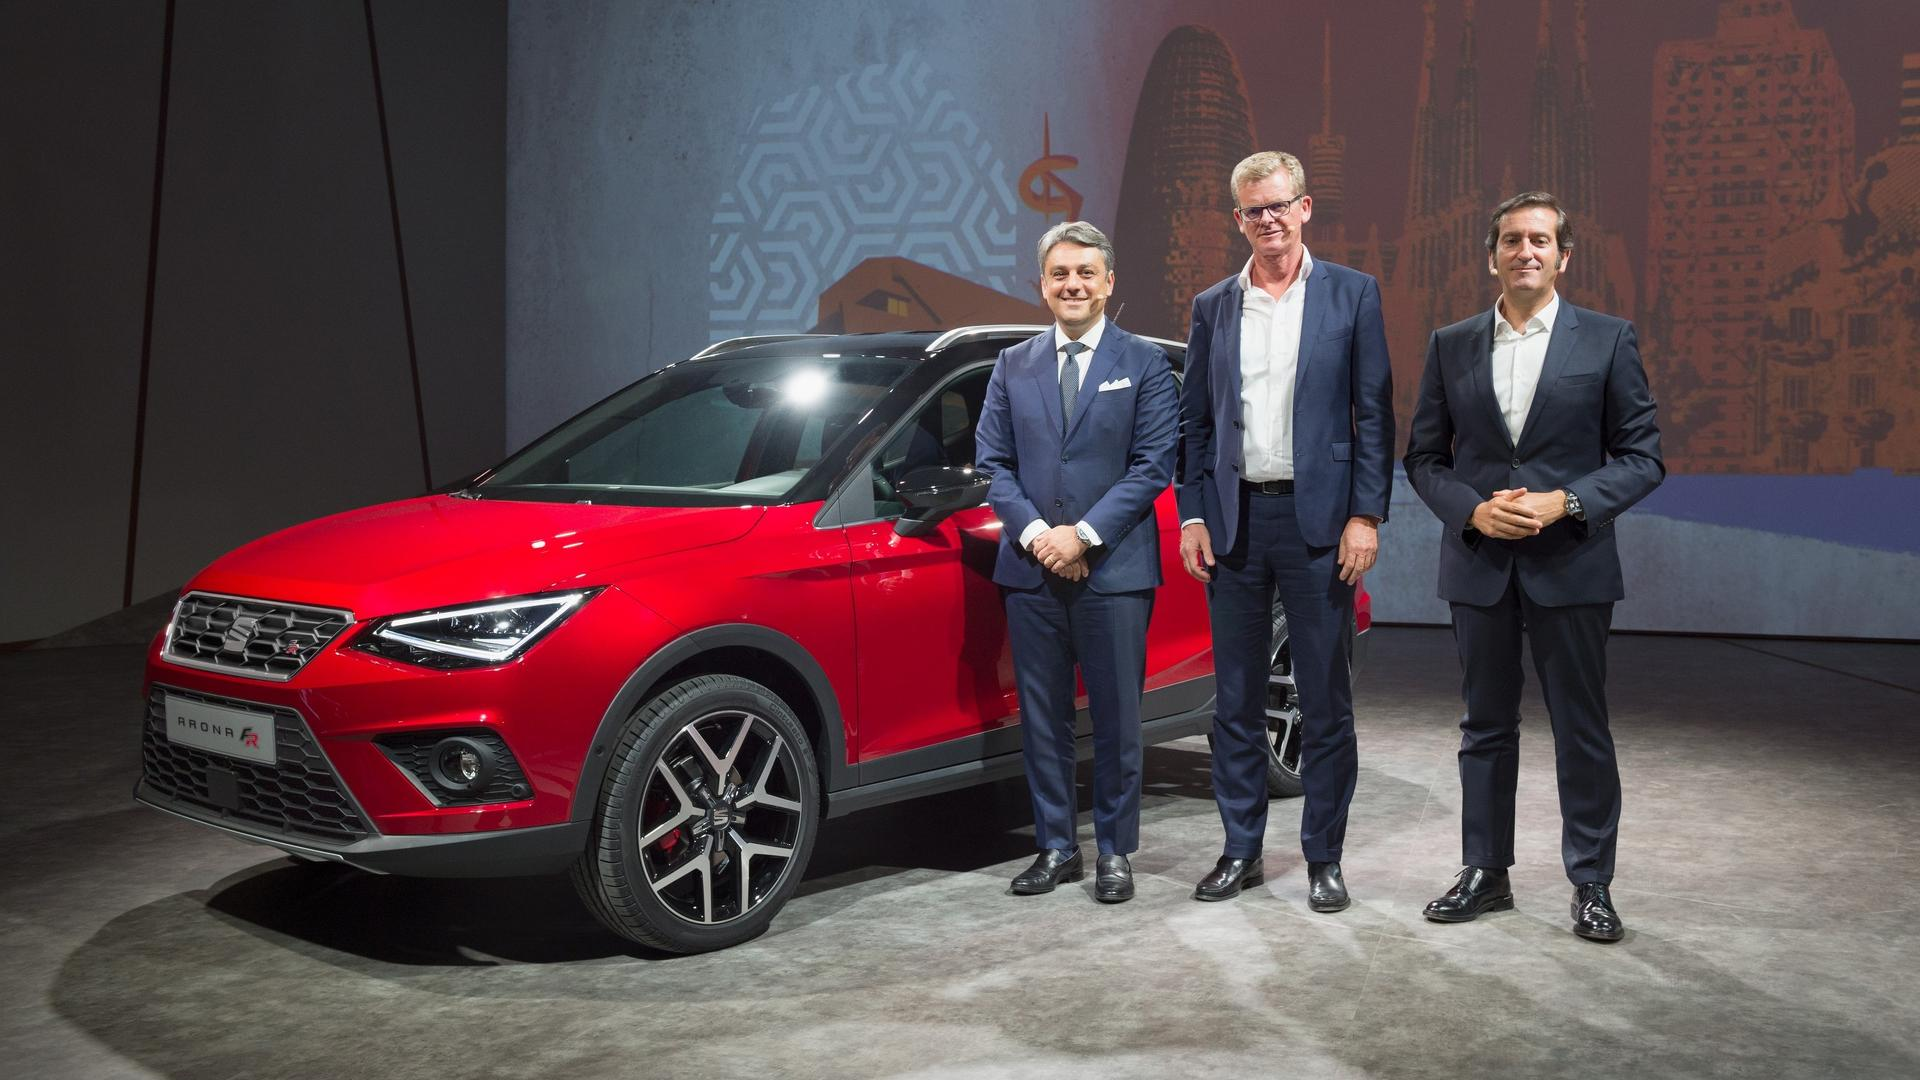 Astonishing Chic 2018 Seat Arona Wants A Piece Of The Small Suv Pie Caraccident5 Cool Chair Designs And Ideas Caraccident5Info